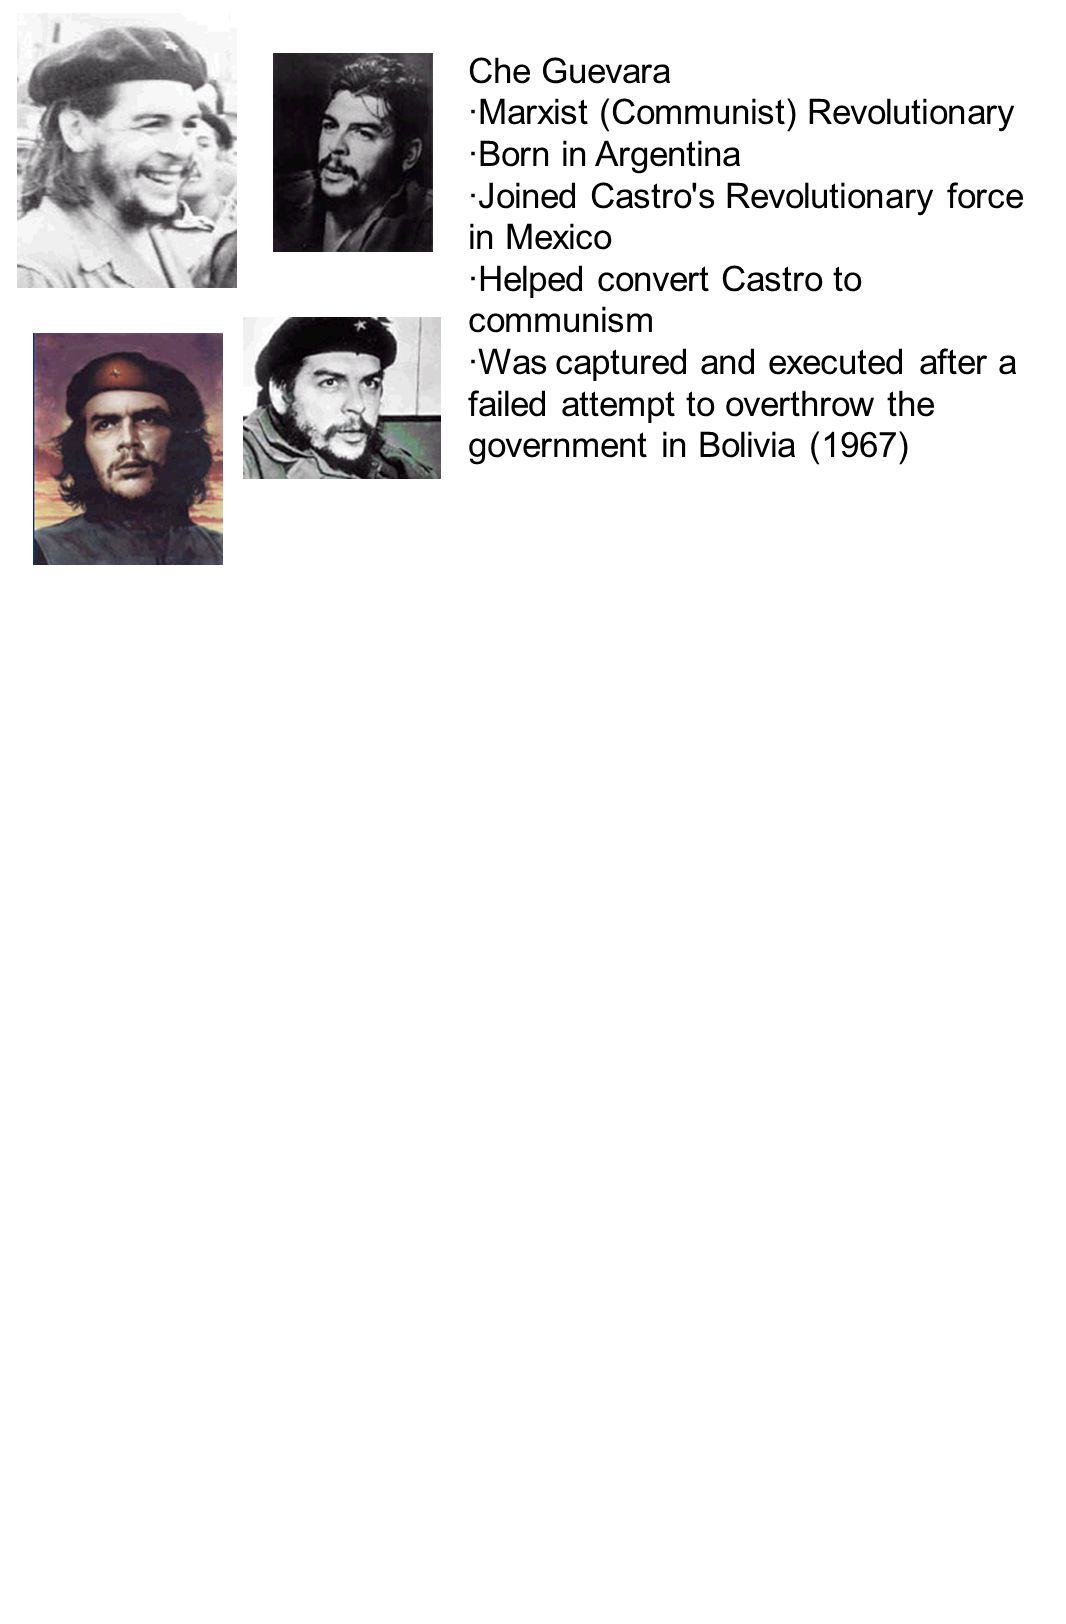 Che Guevara ·Marxist (Communist) Revolutionary ·Born in Argentina ·Joined Castro's Revolutionary force in Mexico ·Helped convert Castro to communism ·